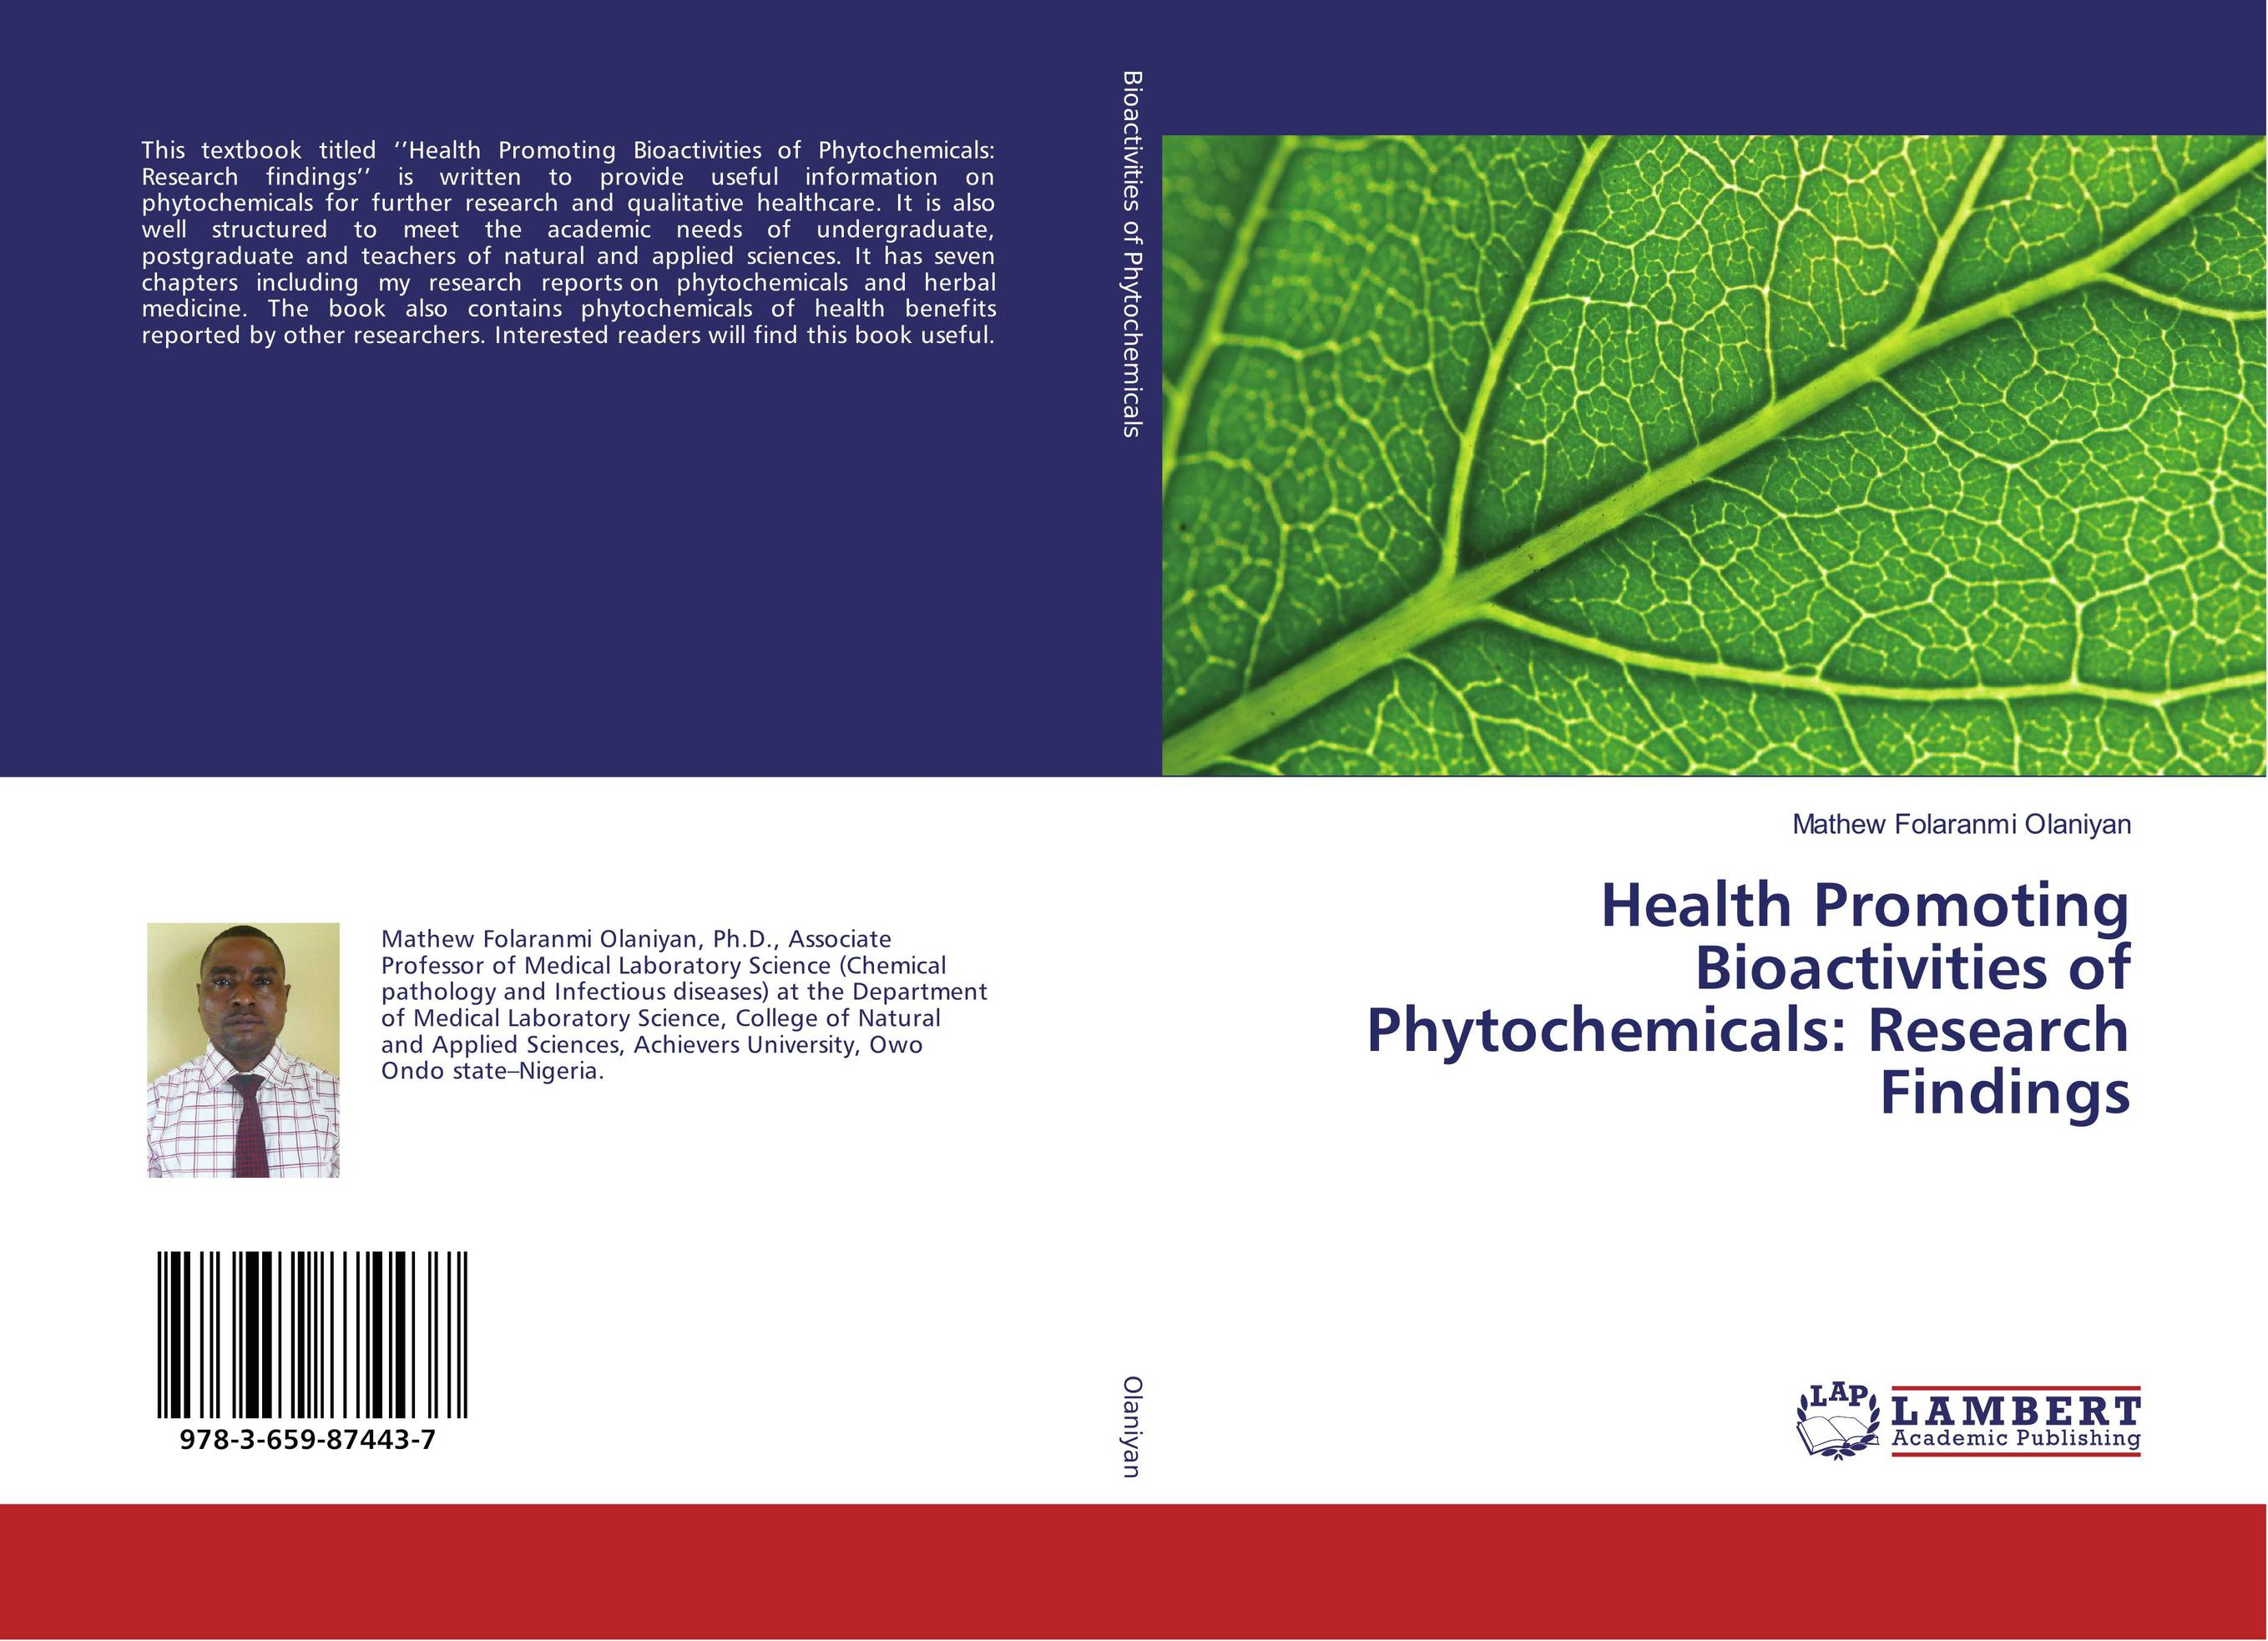 Health Promoting Bioactivities of Phytochemicals: Research Findings prostate health devices is prostate removal prostatitis mainly for the prostate health and prostatitis health capsule